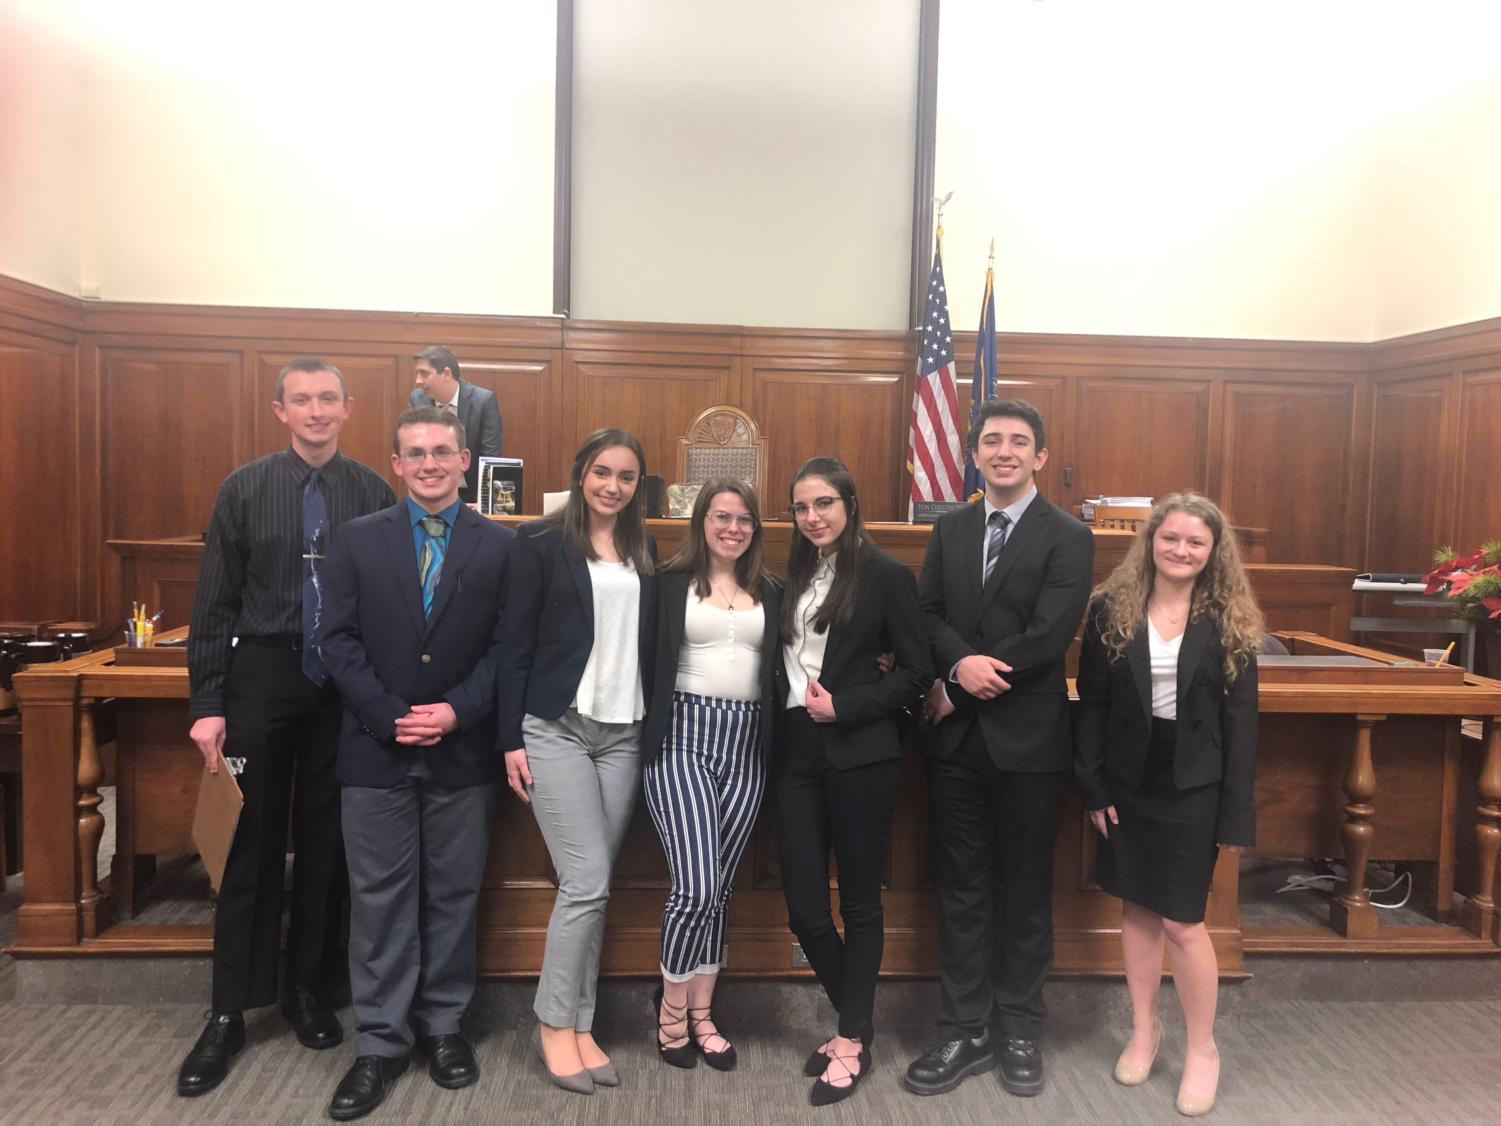 The opioid epidemic is the focus of the fictional court case for this year's mock trial team.